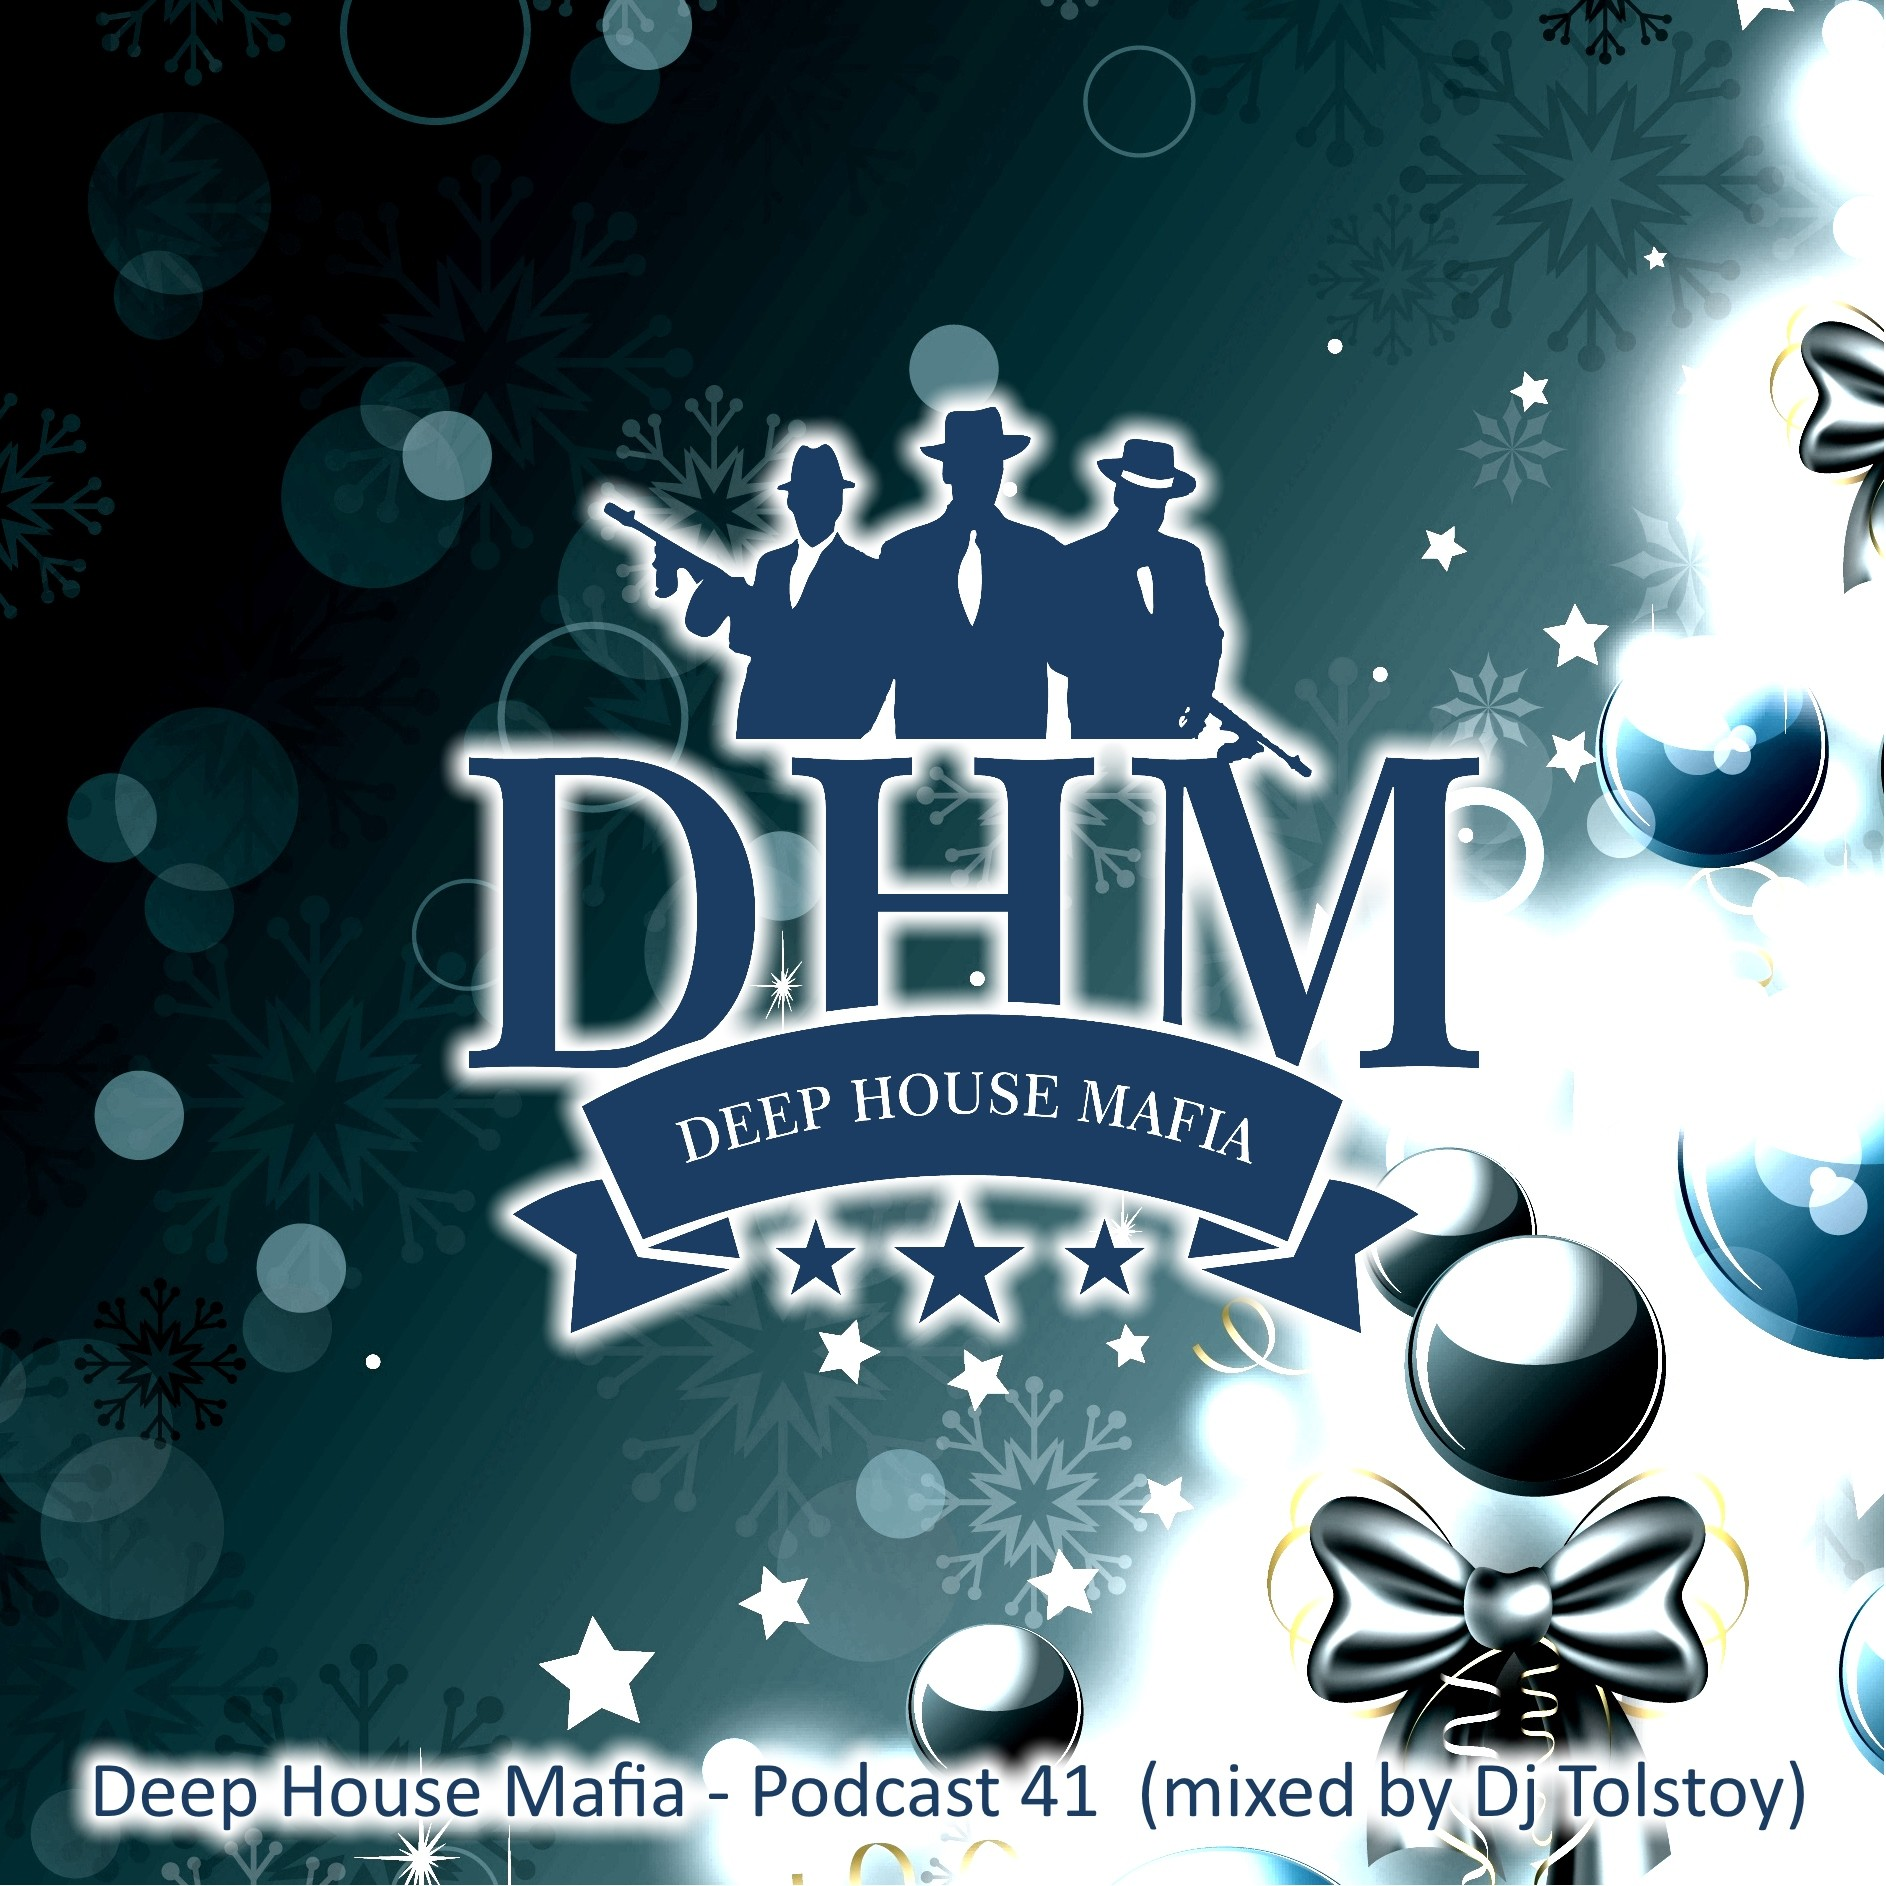 Deep house mafia podcast 41 mixed by dj tolstoy for Deep house 2000